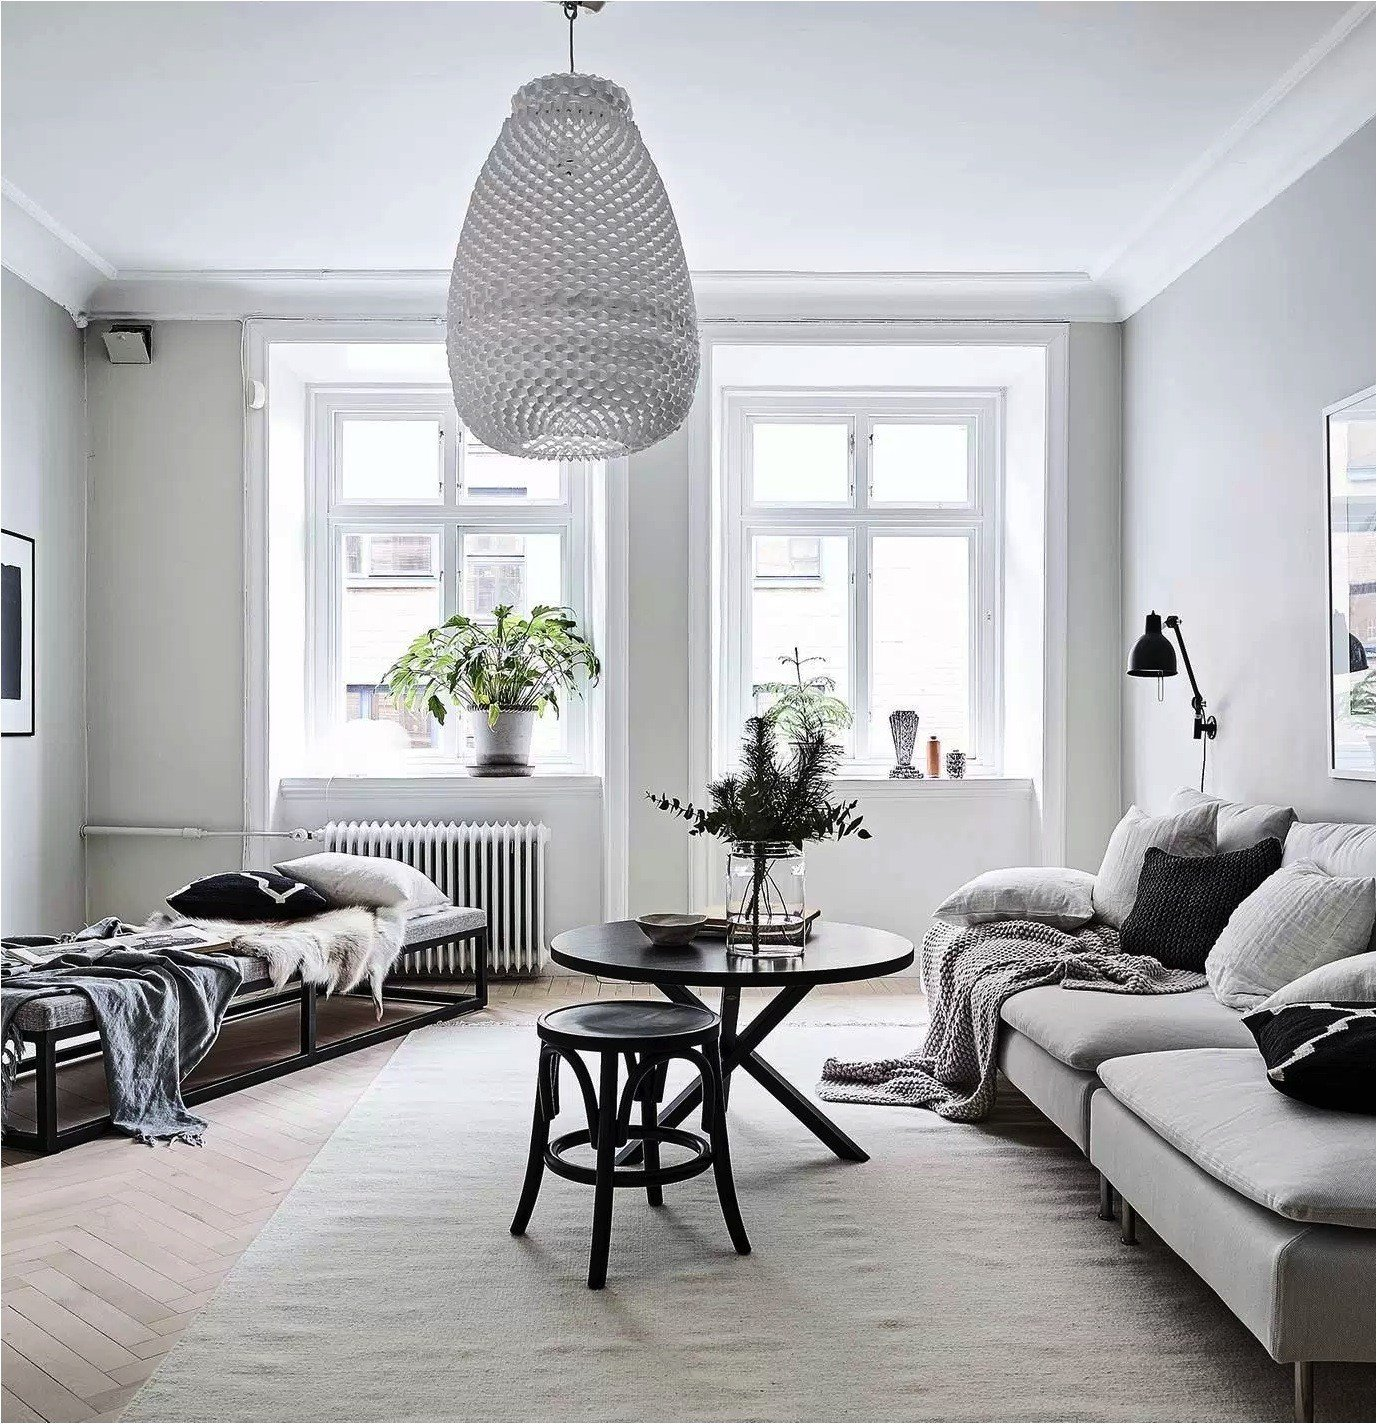 Small Living Room Diy Ideas Unique 8 Clever Small Living Room Ideas with Scandi Style Diy Home Decor Your Diy Family